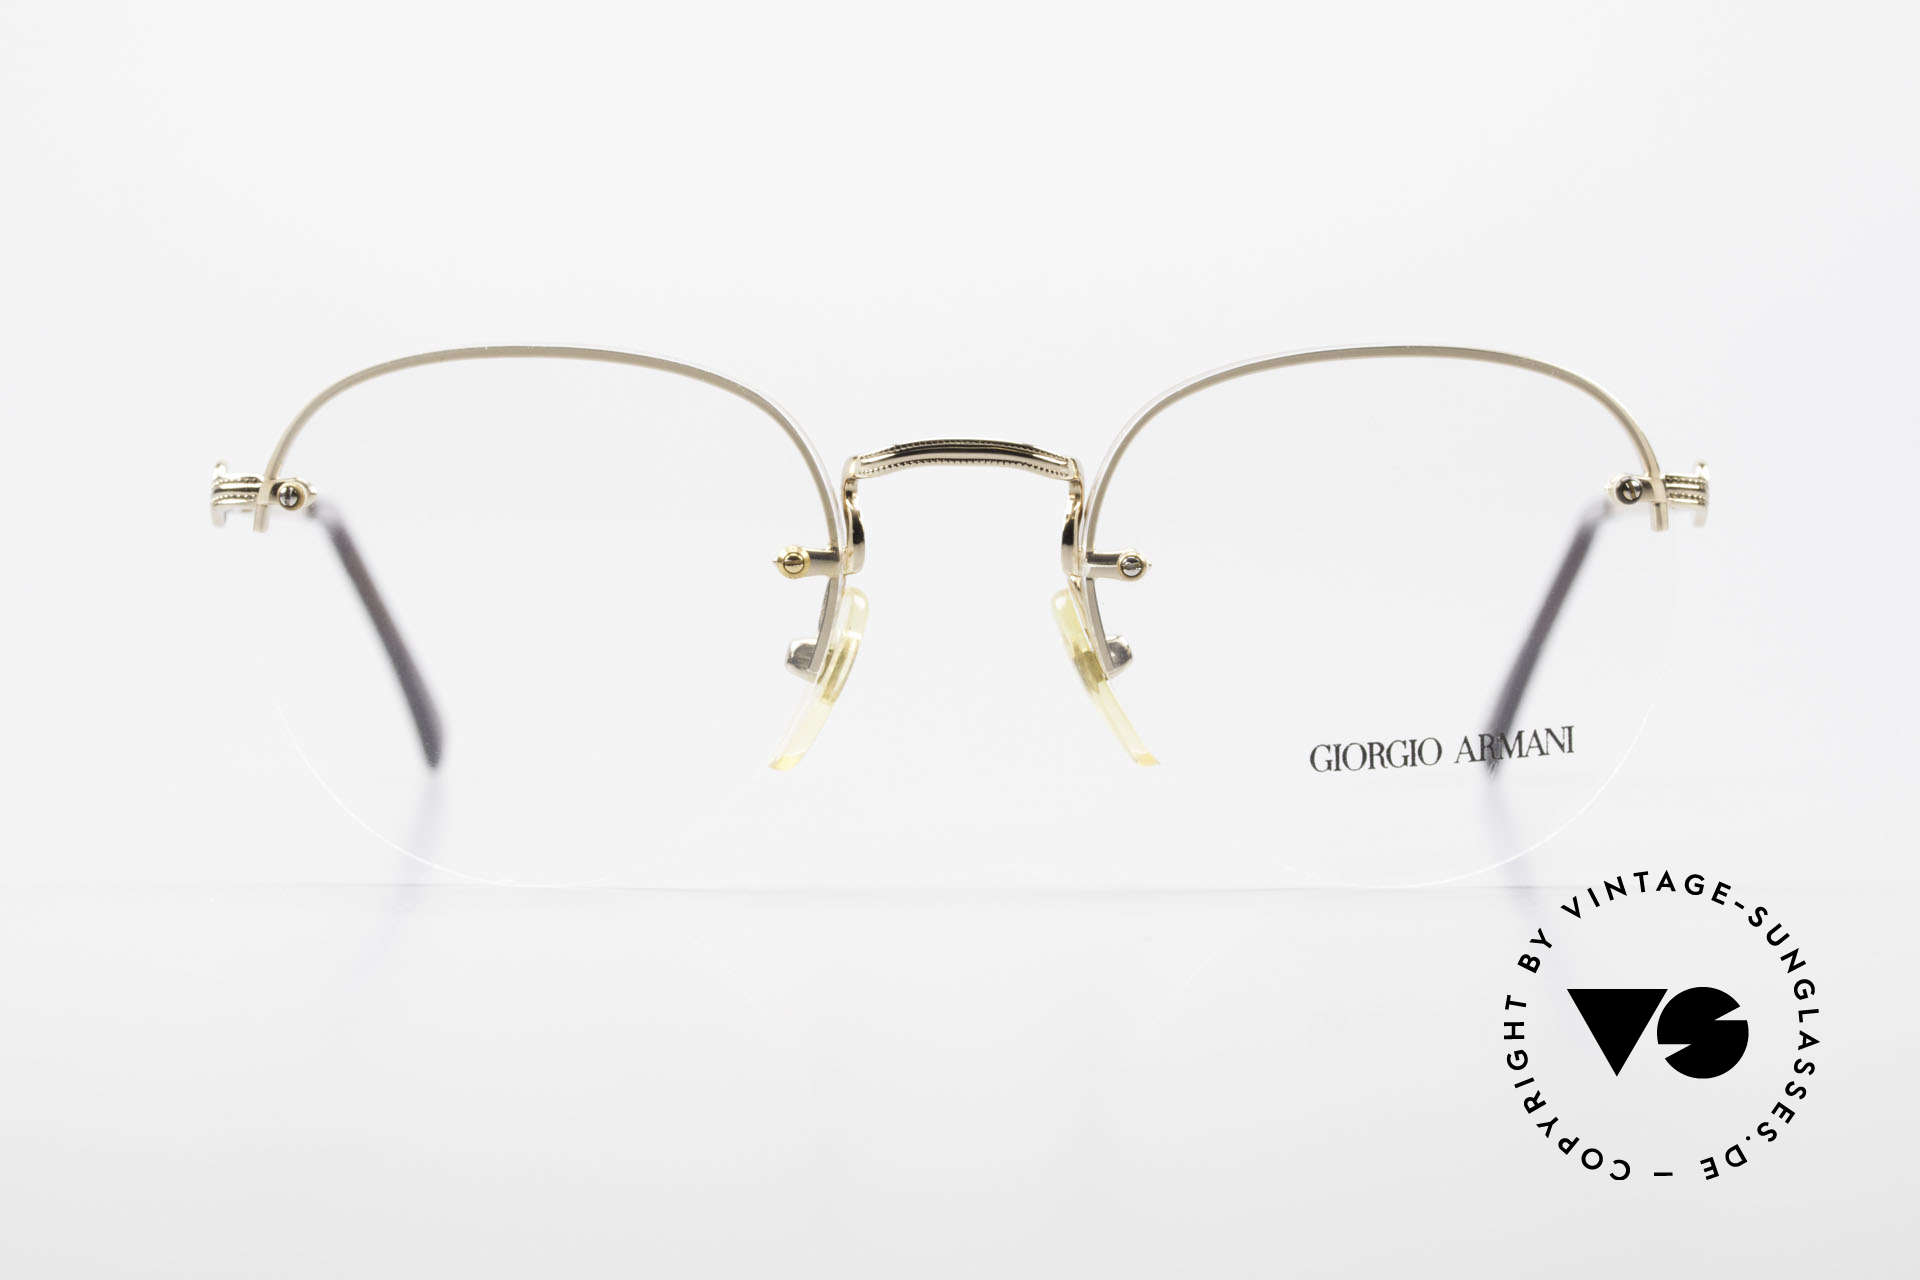 """Giorgio Armani 161 Rimless Vintage Eyeglasses 80s, frame with many tiny engravings & """"tortoise"""" finish, Made for Men and Women"""